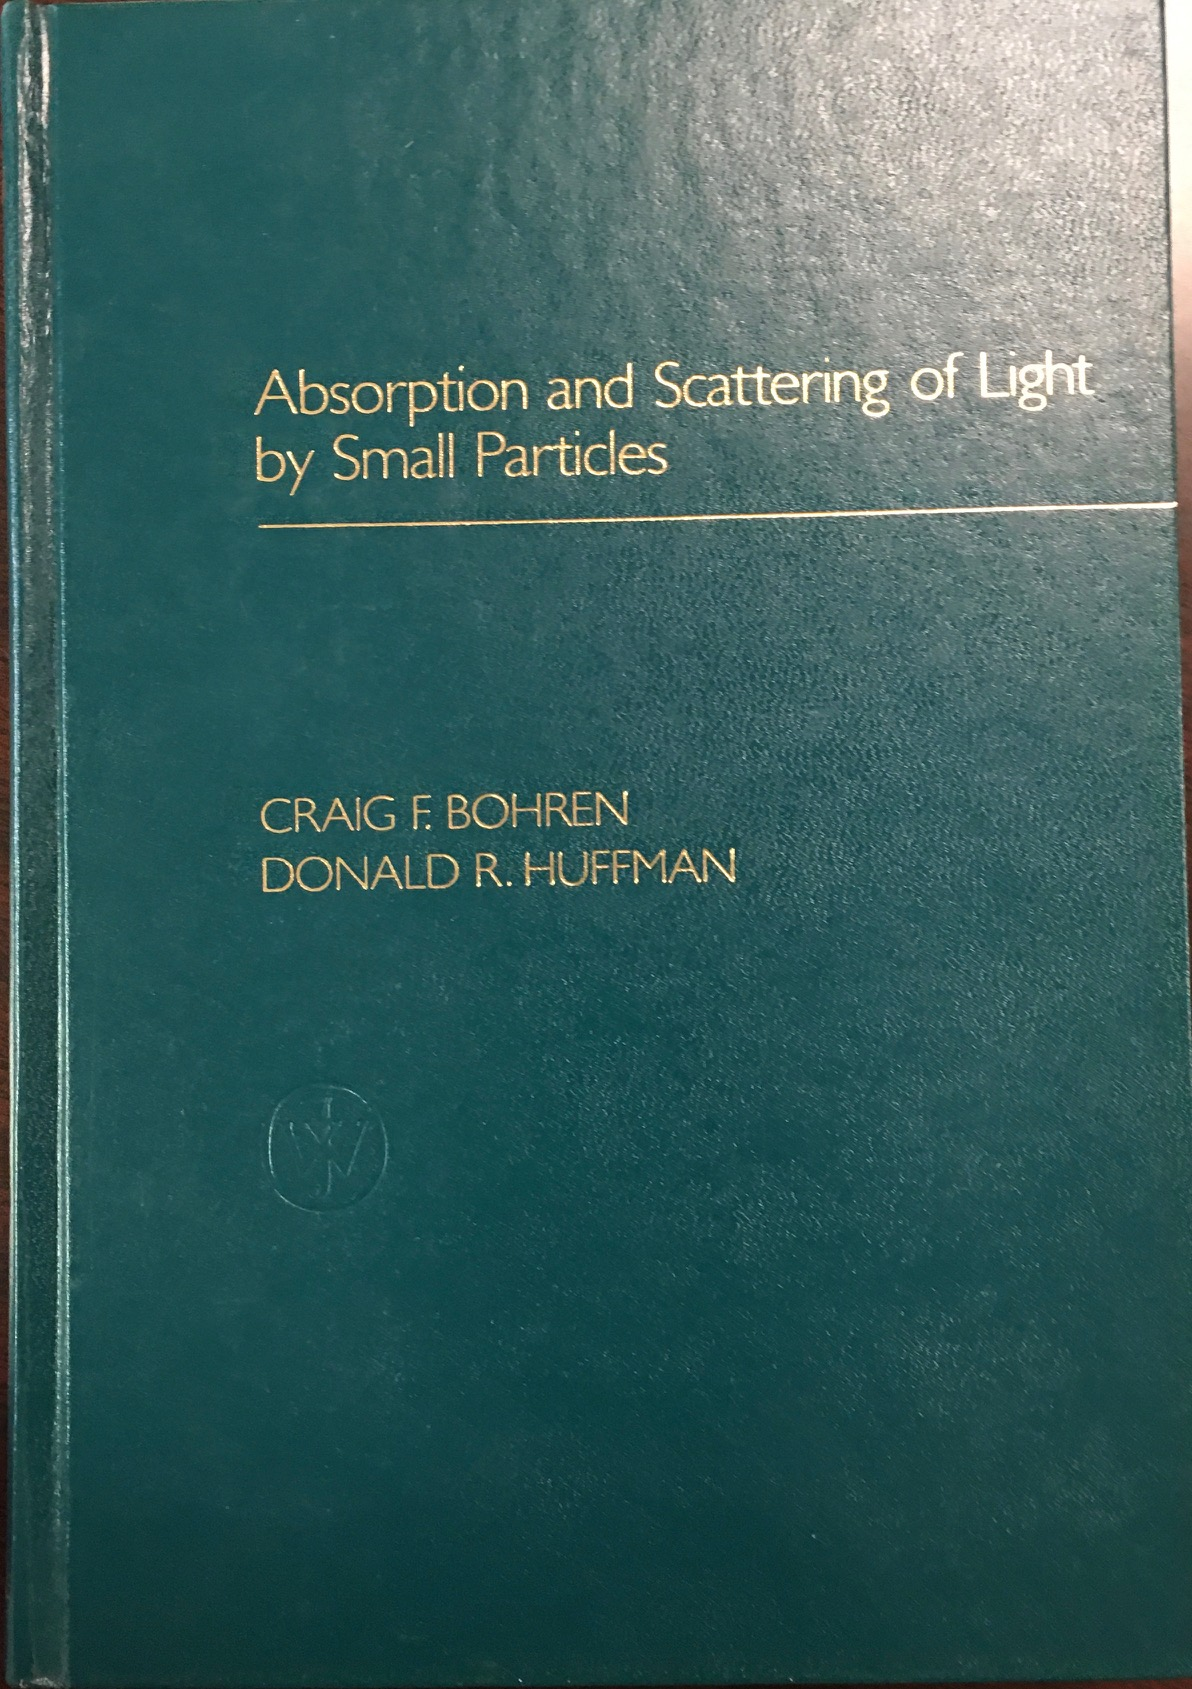 Image for Absorption and Scattering of Light by Small Particles